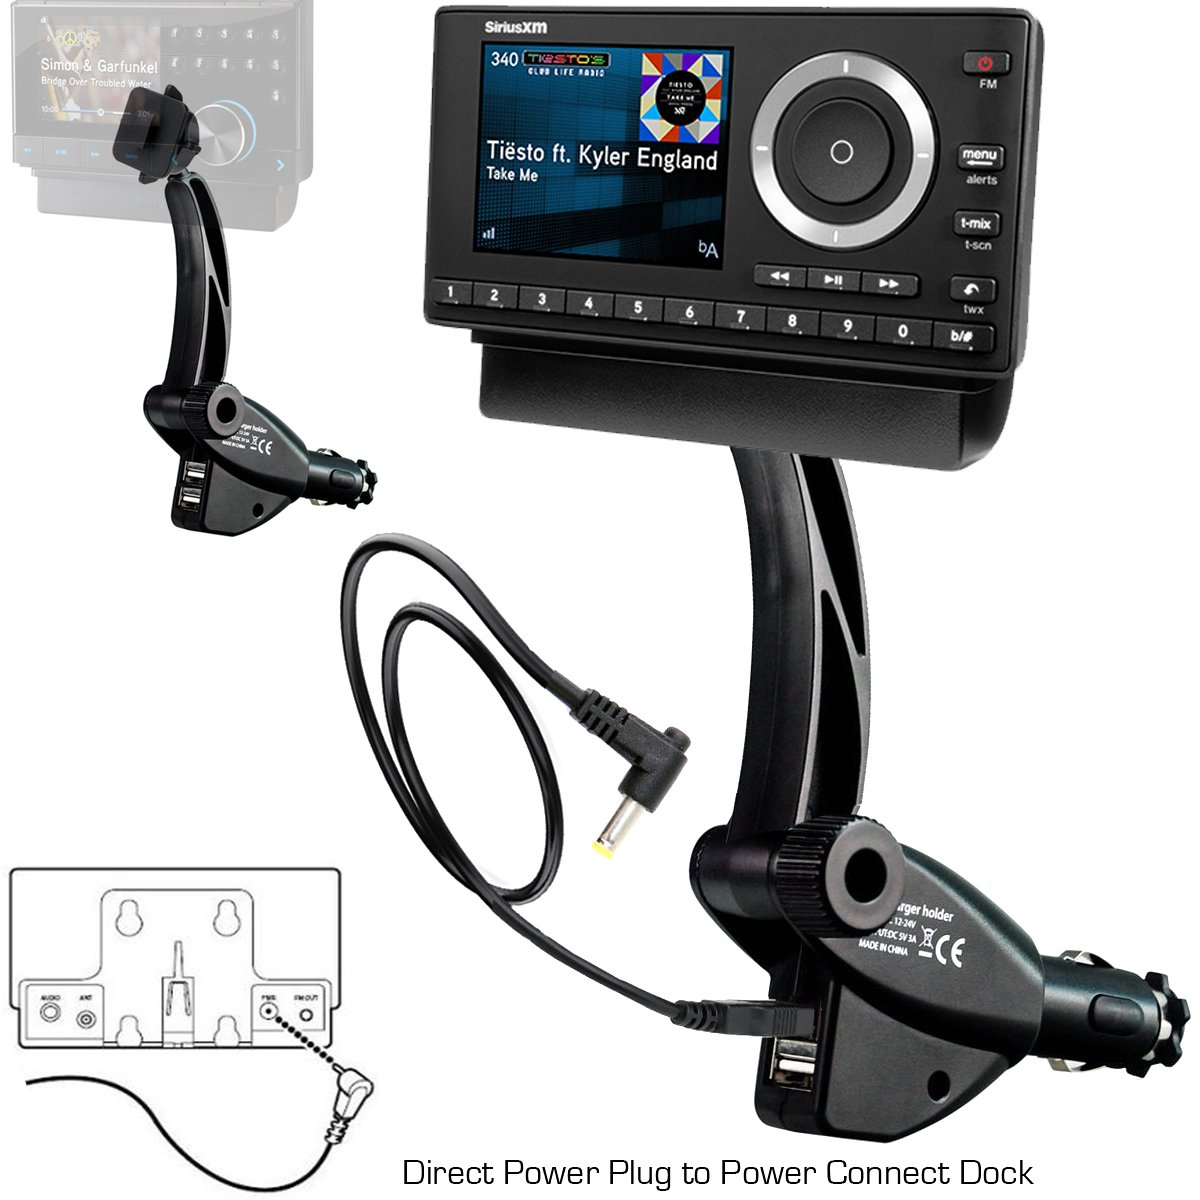 ChargerCity Dual USB Sirius XM Satellite Radio Car Truck Lighter Socket Mount w/Tilt Adjust & PowerConnect Cable Adapter for Onyx Plus EZR EZ Lynx Stratus Starmate Xpress (Vehicle Dock NOT Included)